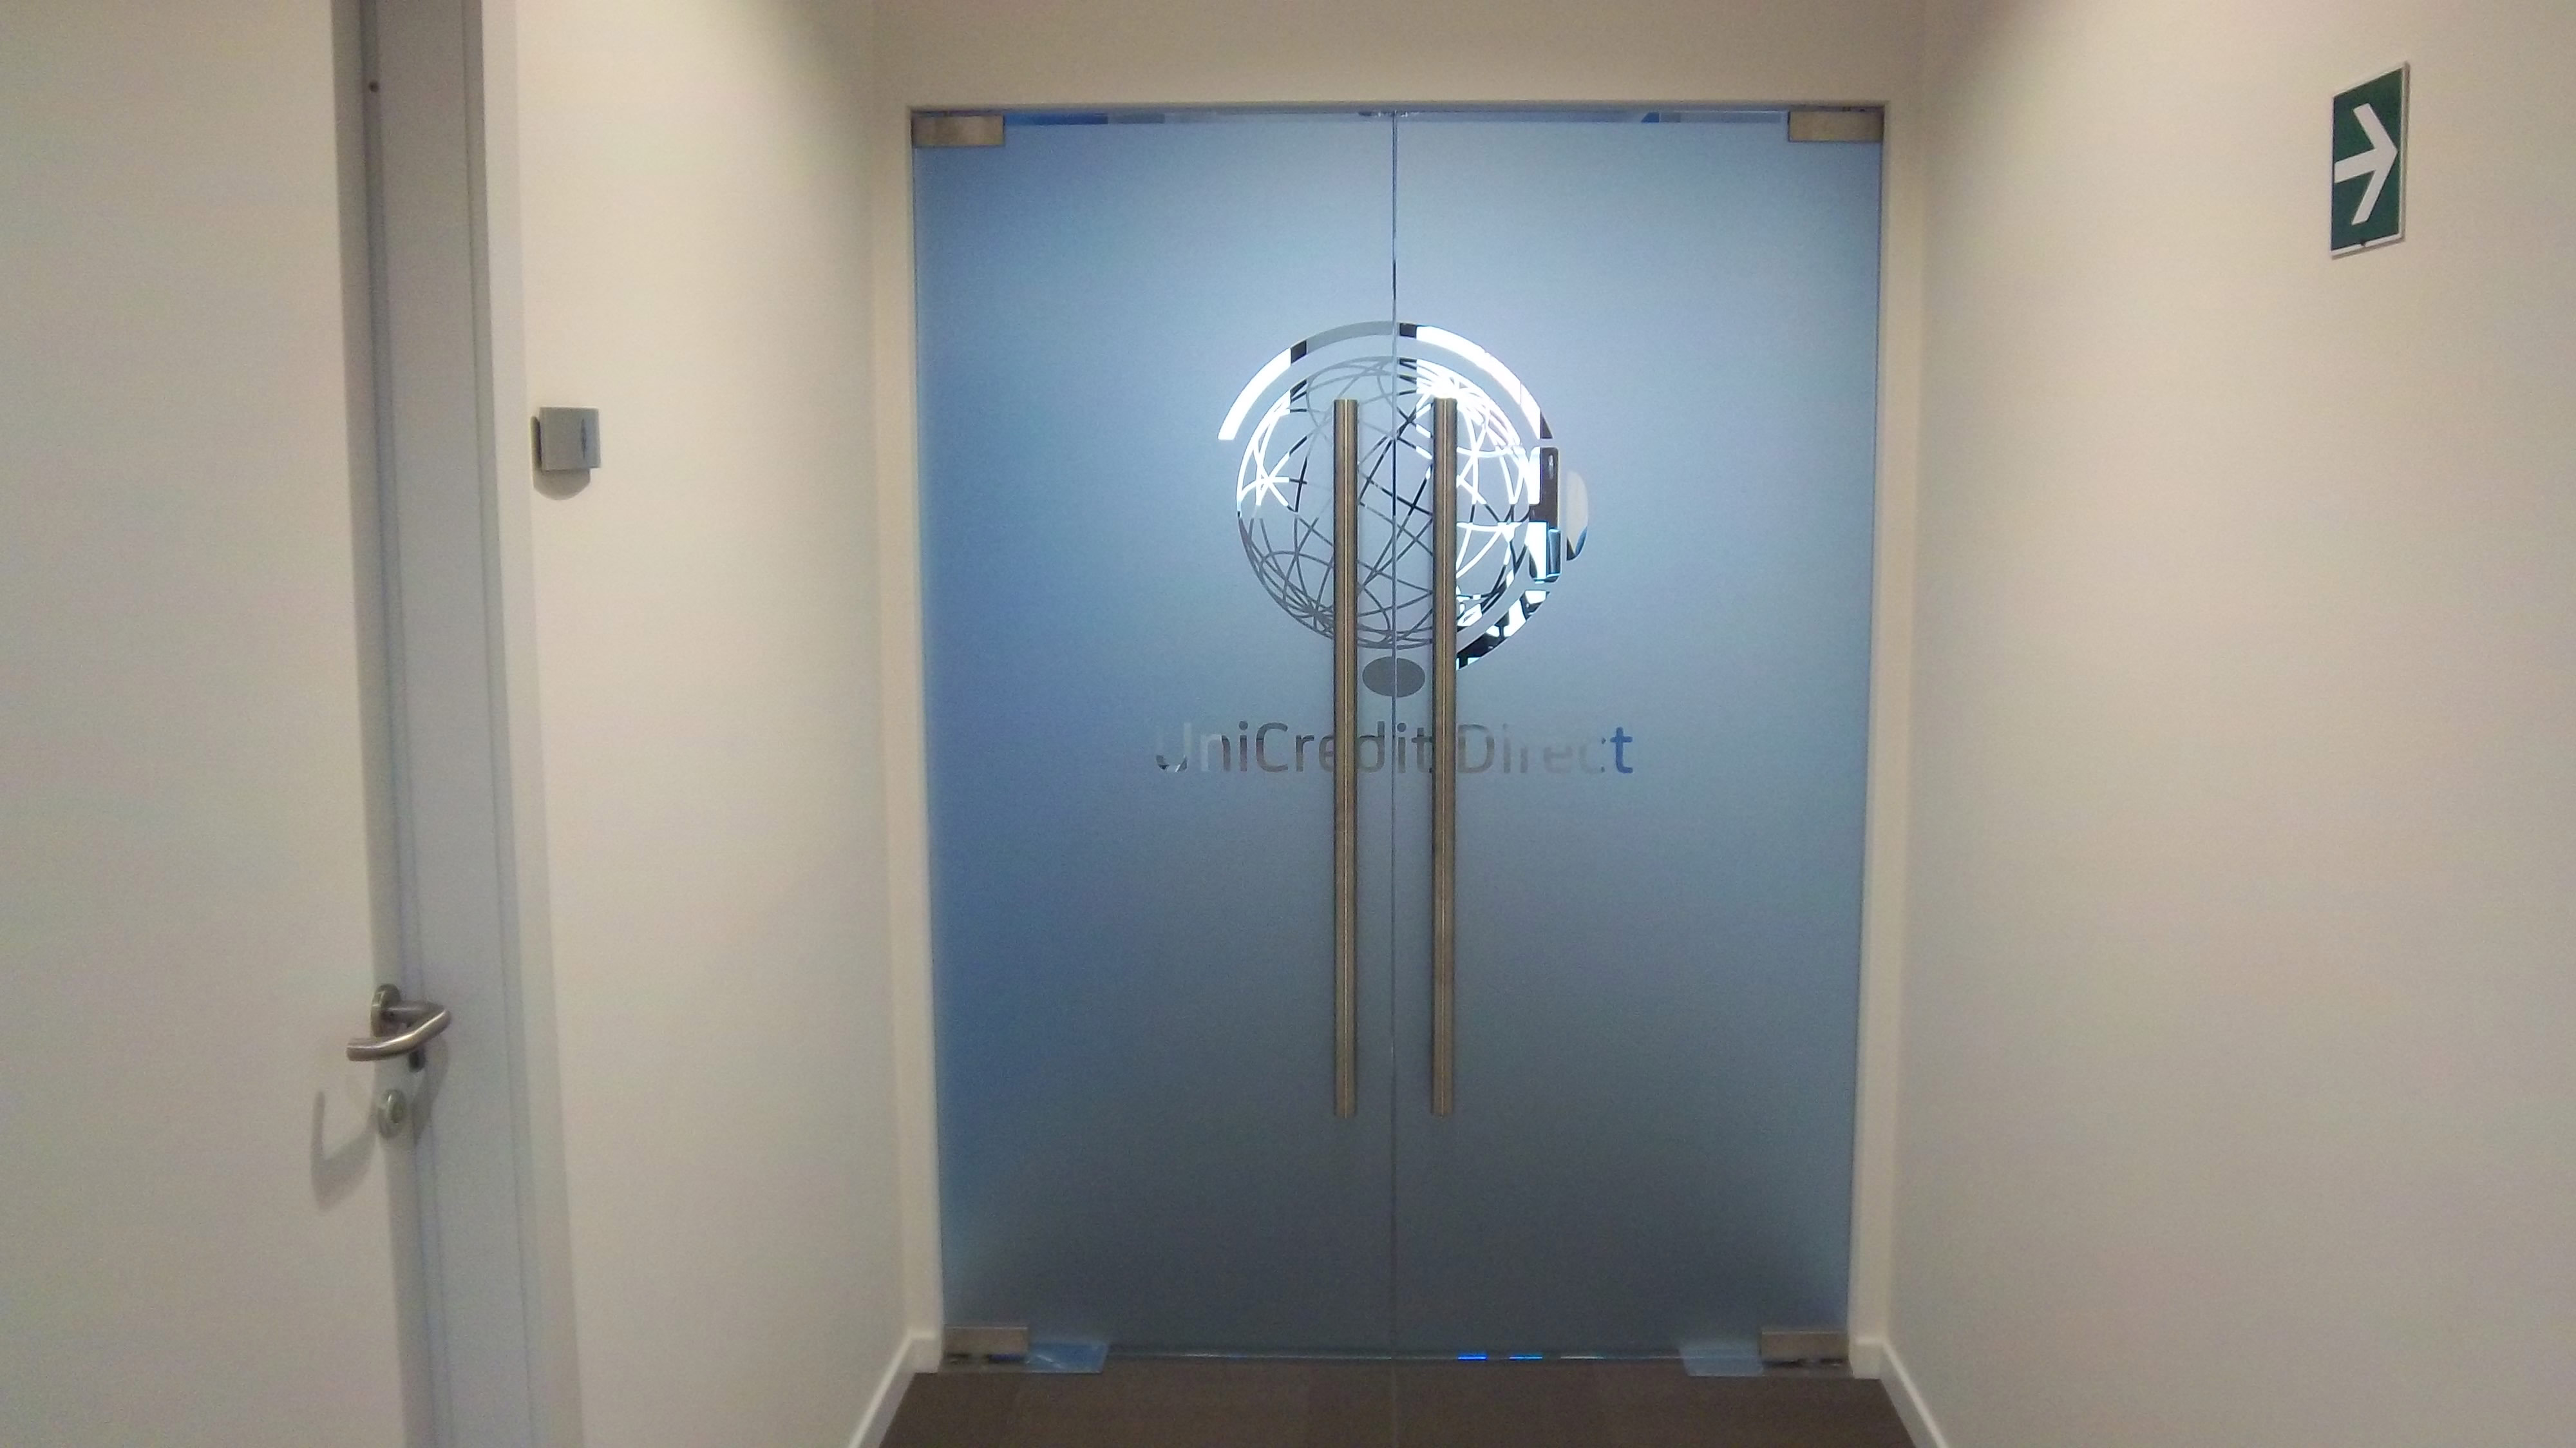 decorazione porta in vetro unicredit sericart2